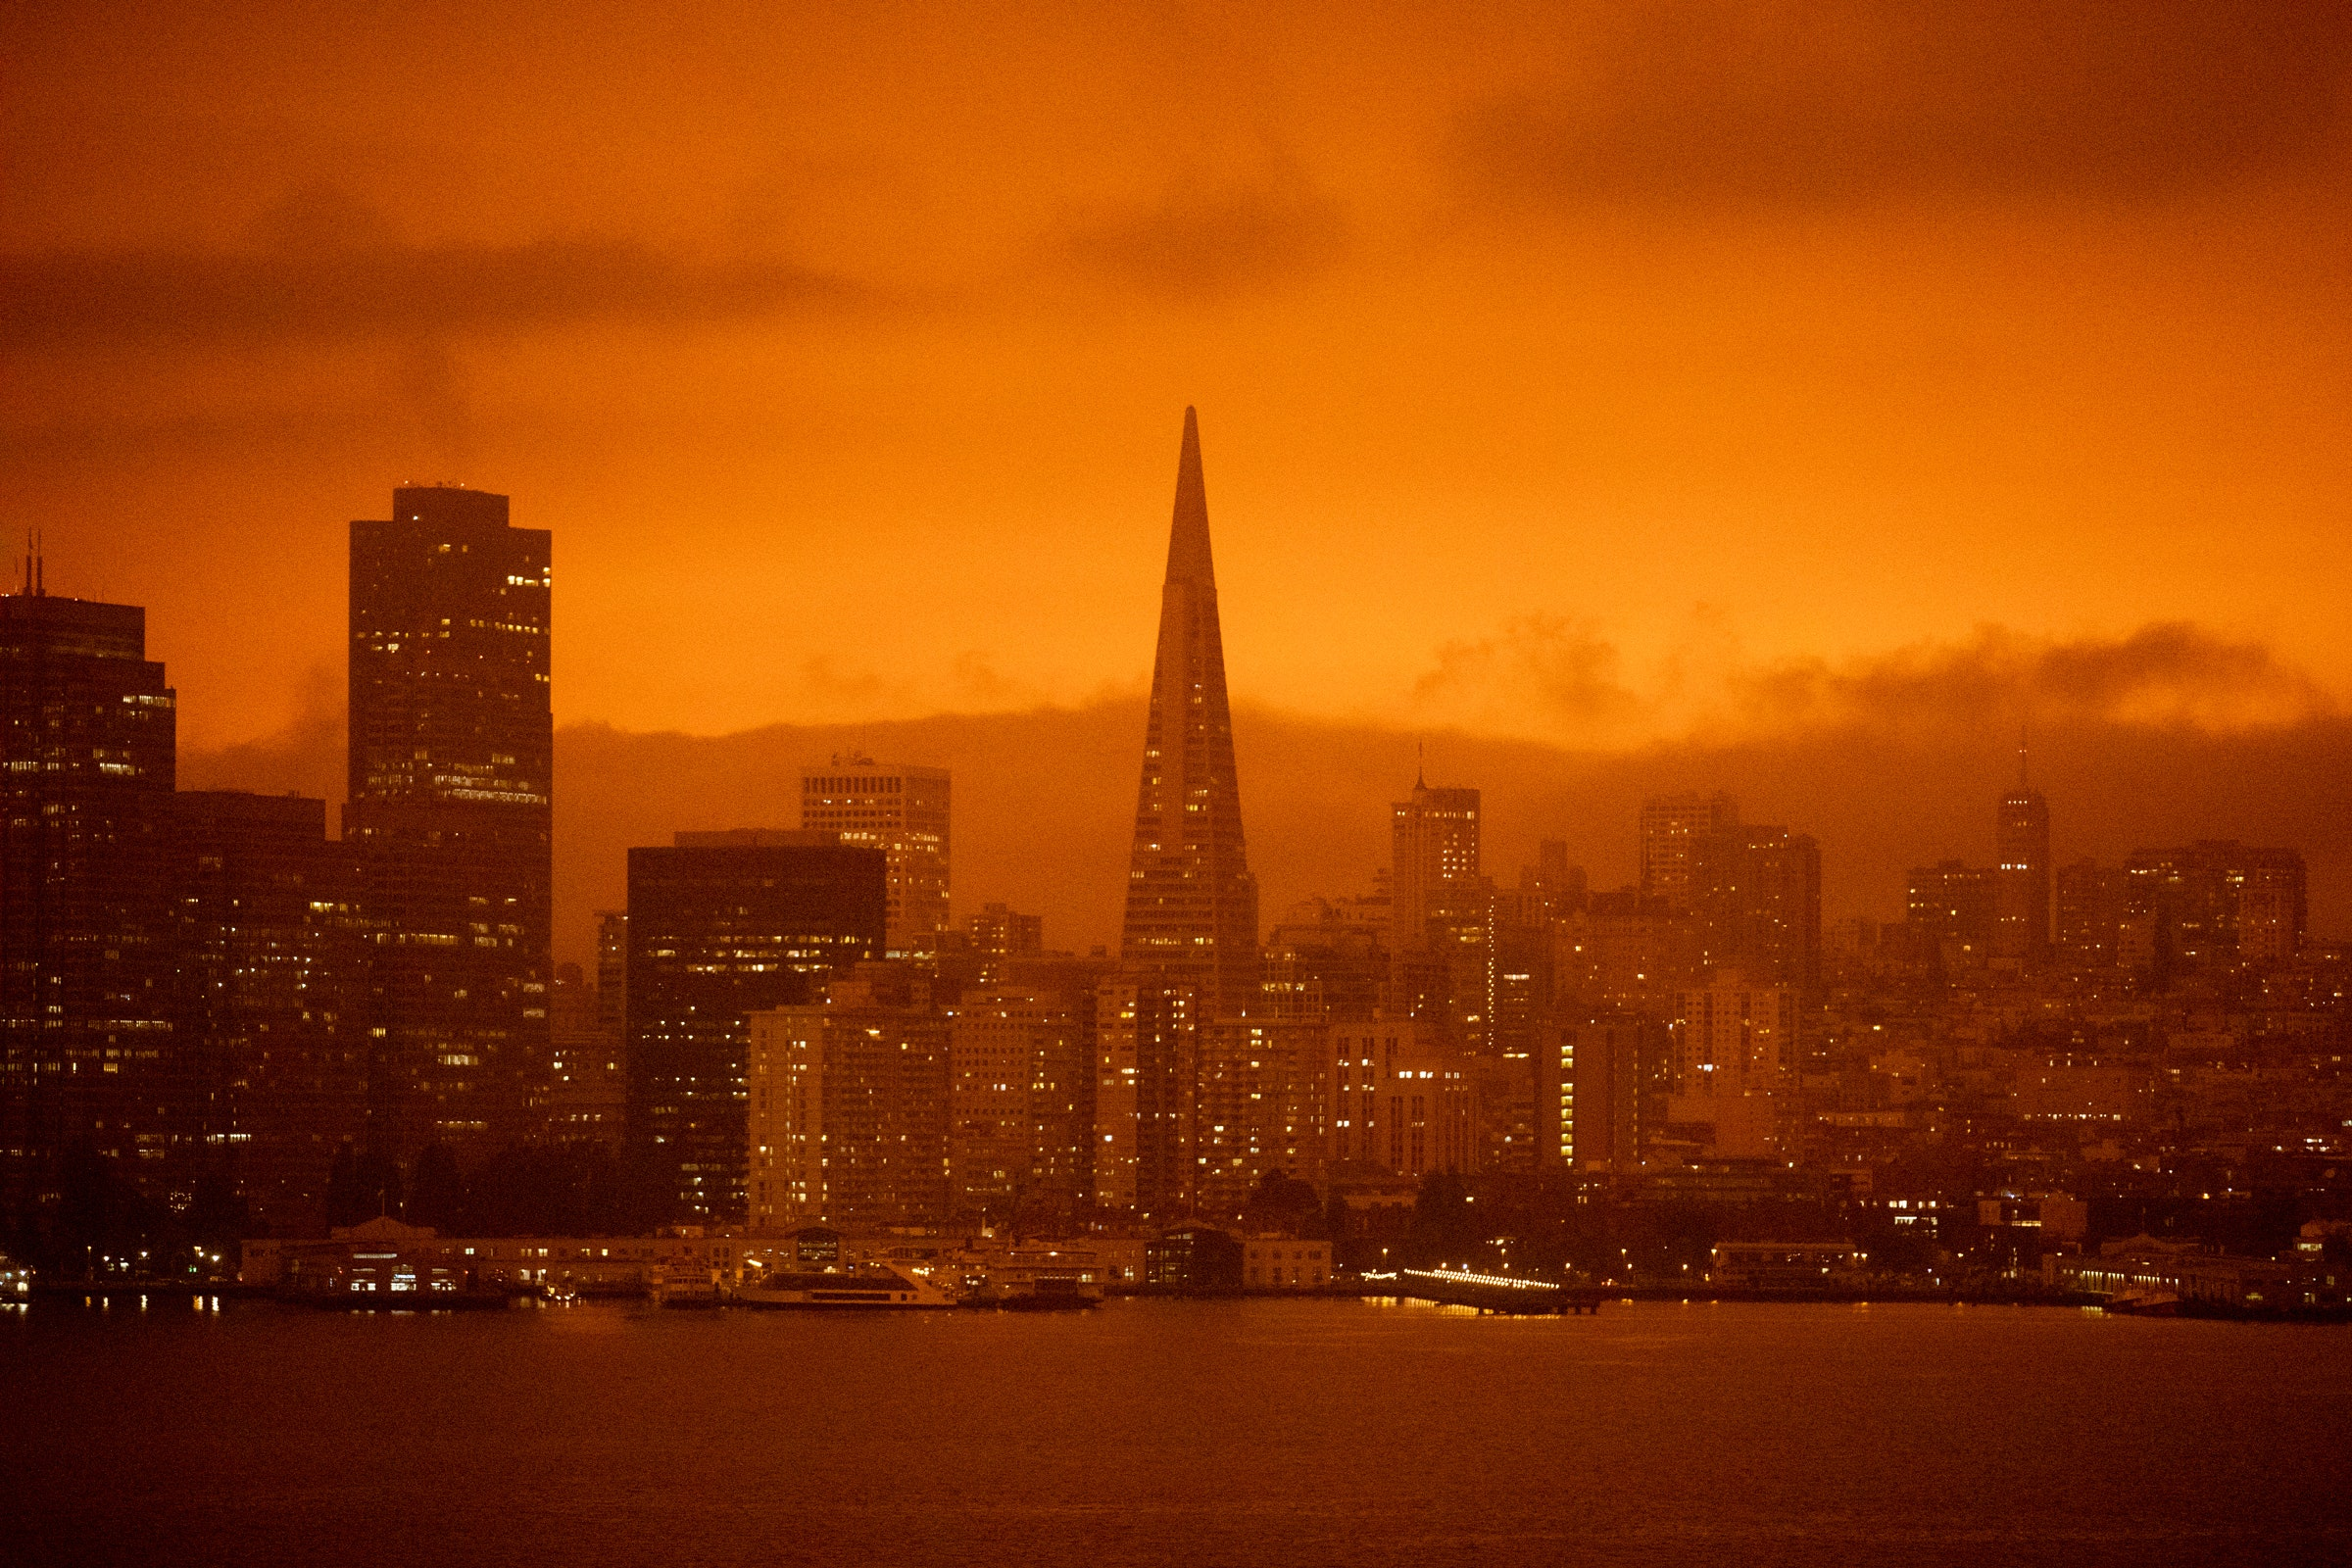 The Bay Area Just Turned Orange. All Eyes Are on PurpleAir | WIRED